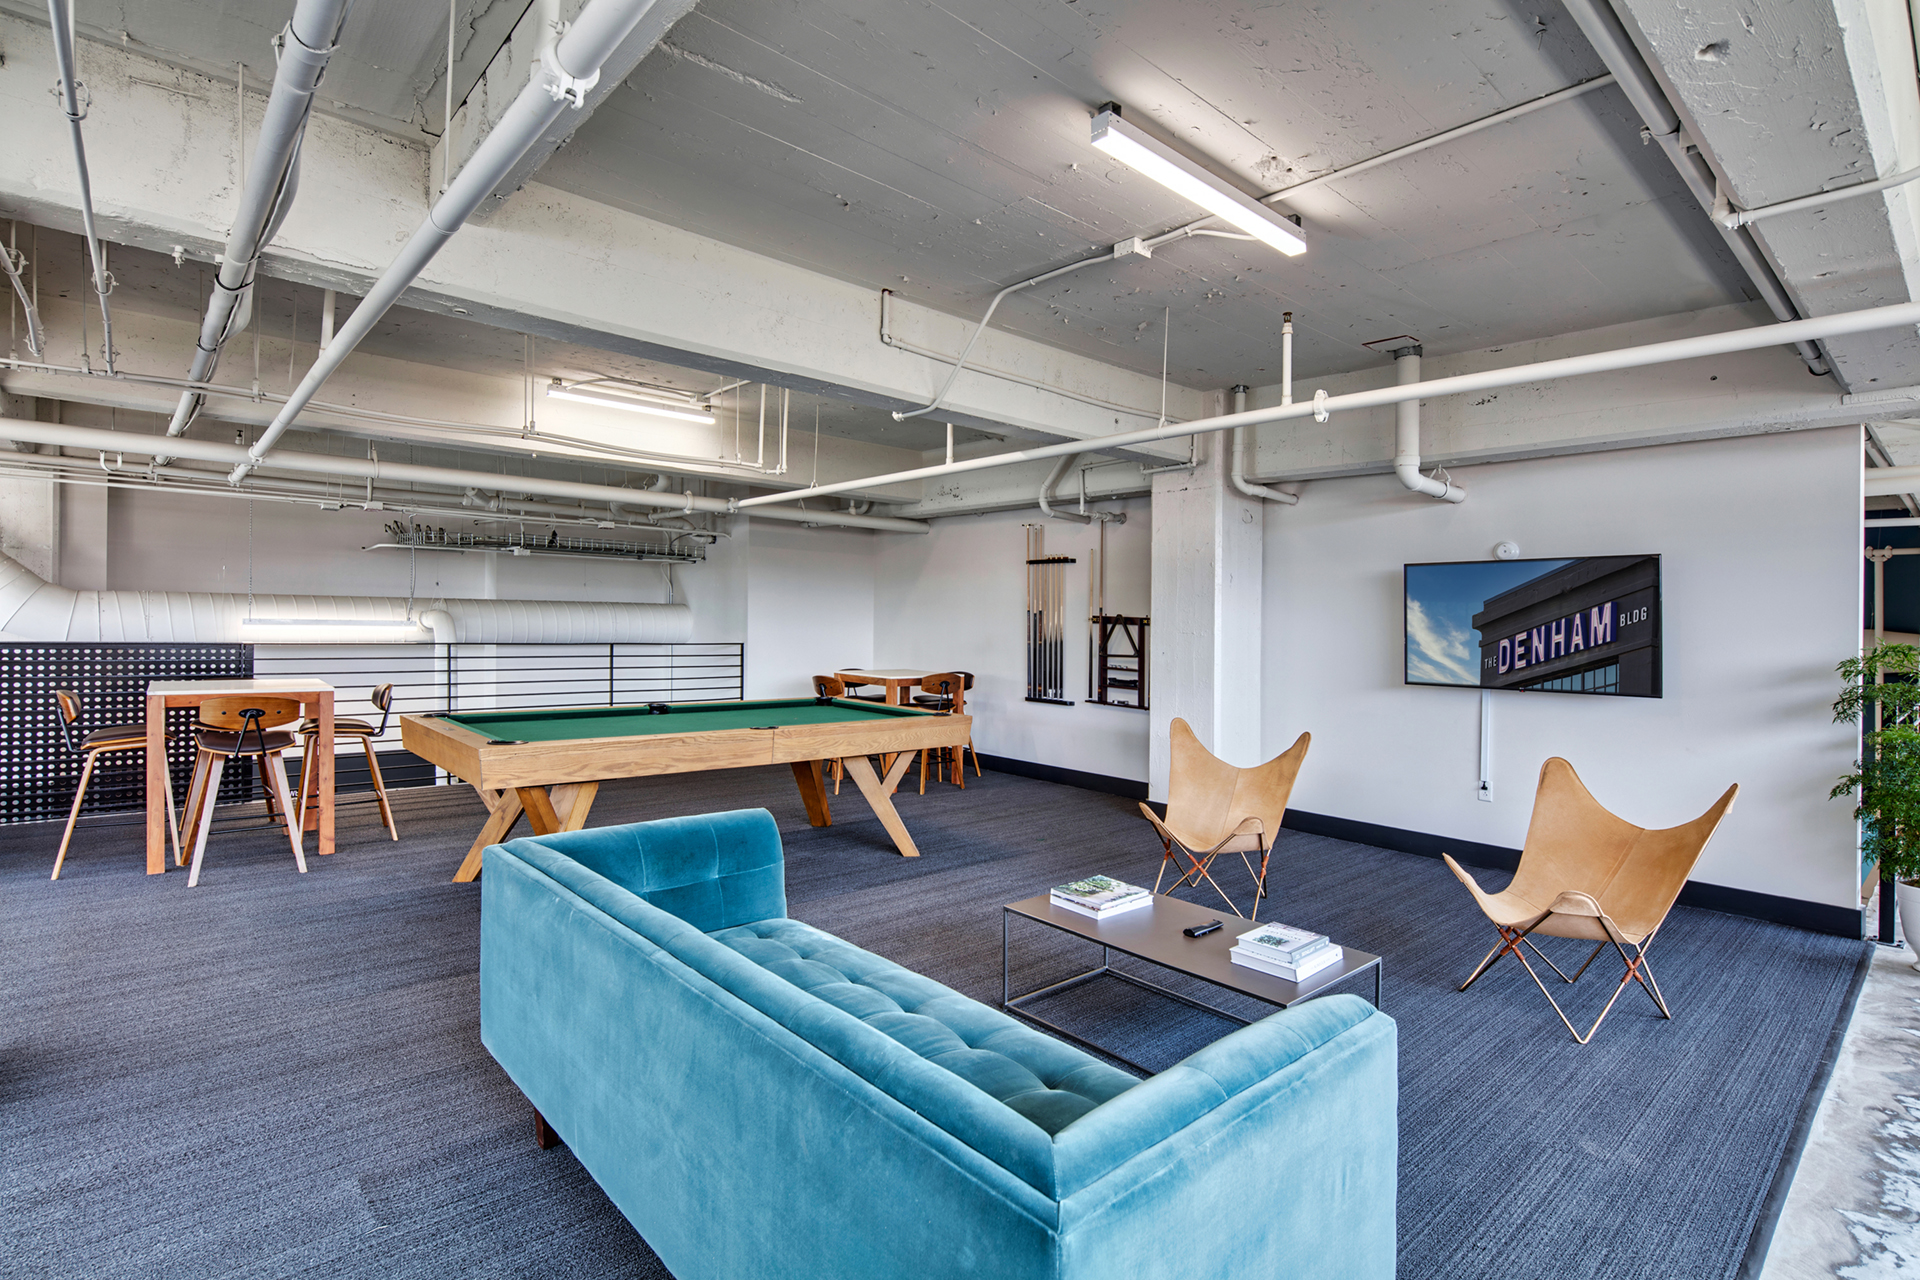 Community room with ample seating and pool table at The Denham Building loft apartments for rent in South Birmingham, AL